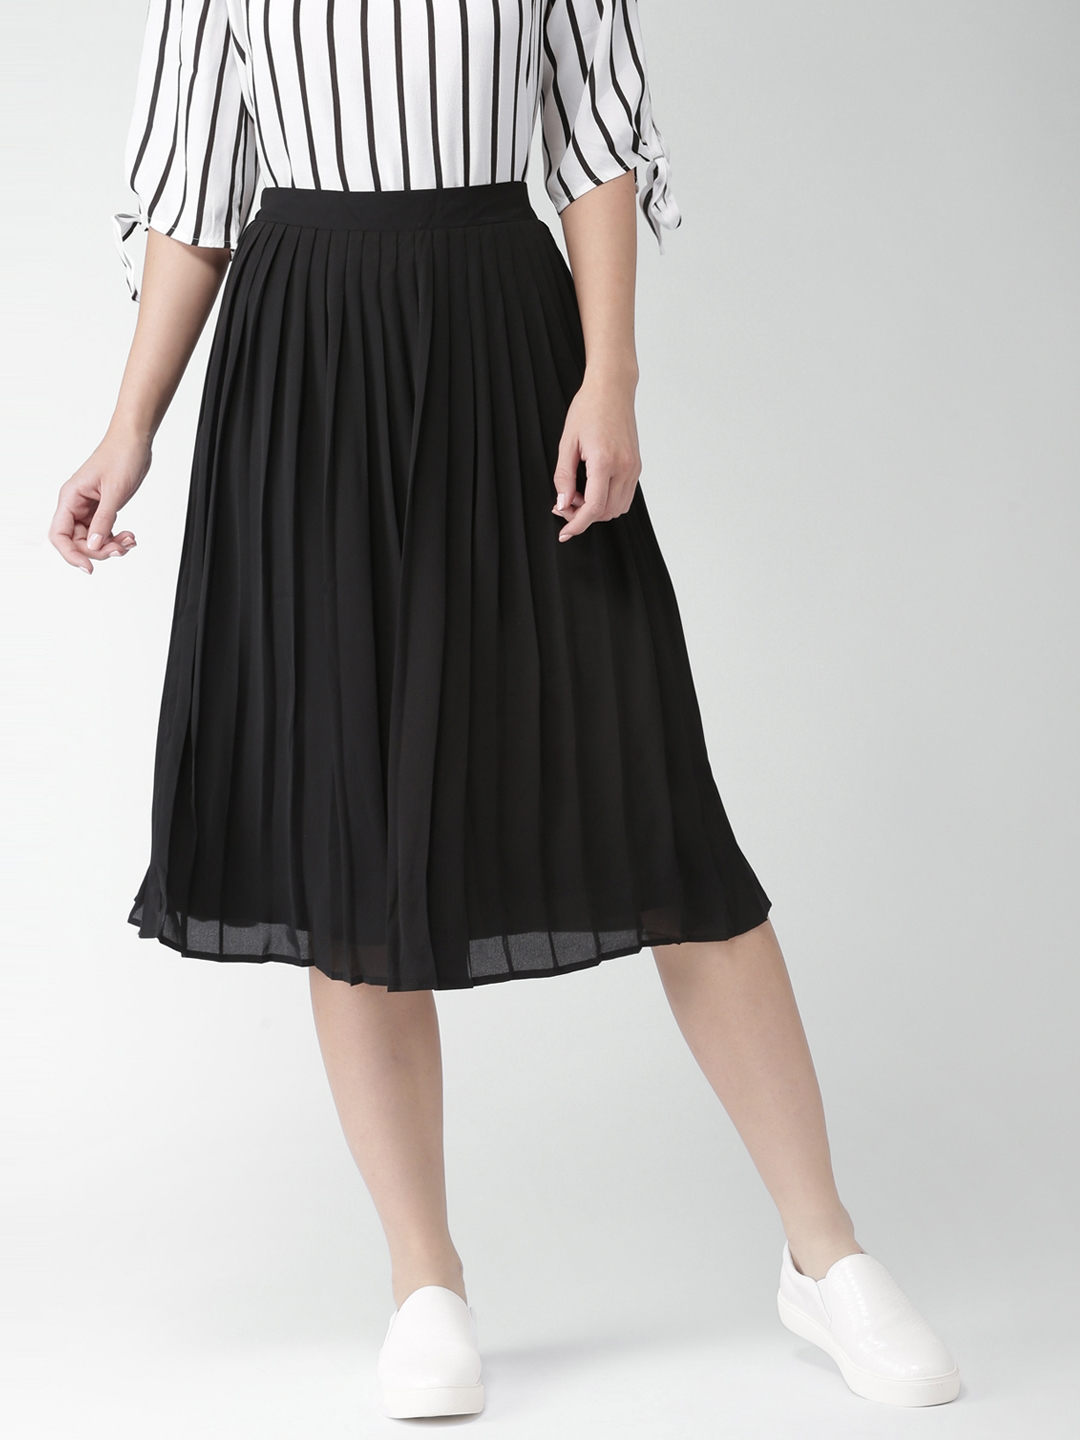 78d78964a8ff Buy FOREVER 21 Black Midi Flared Skirt With Accordion Pleats ...